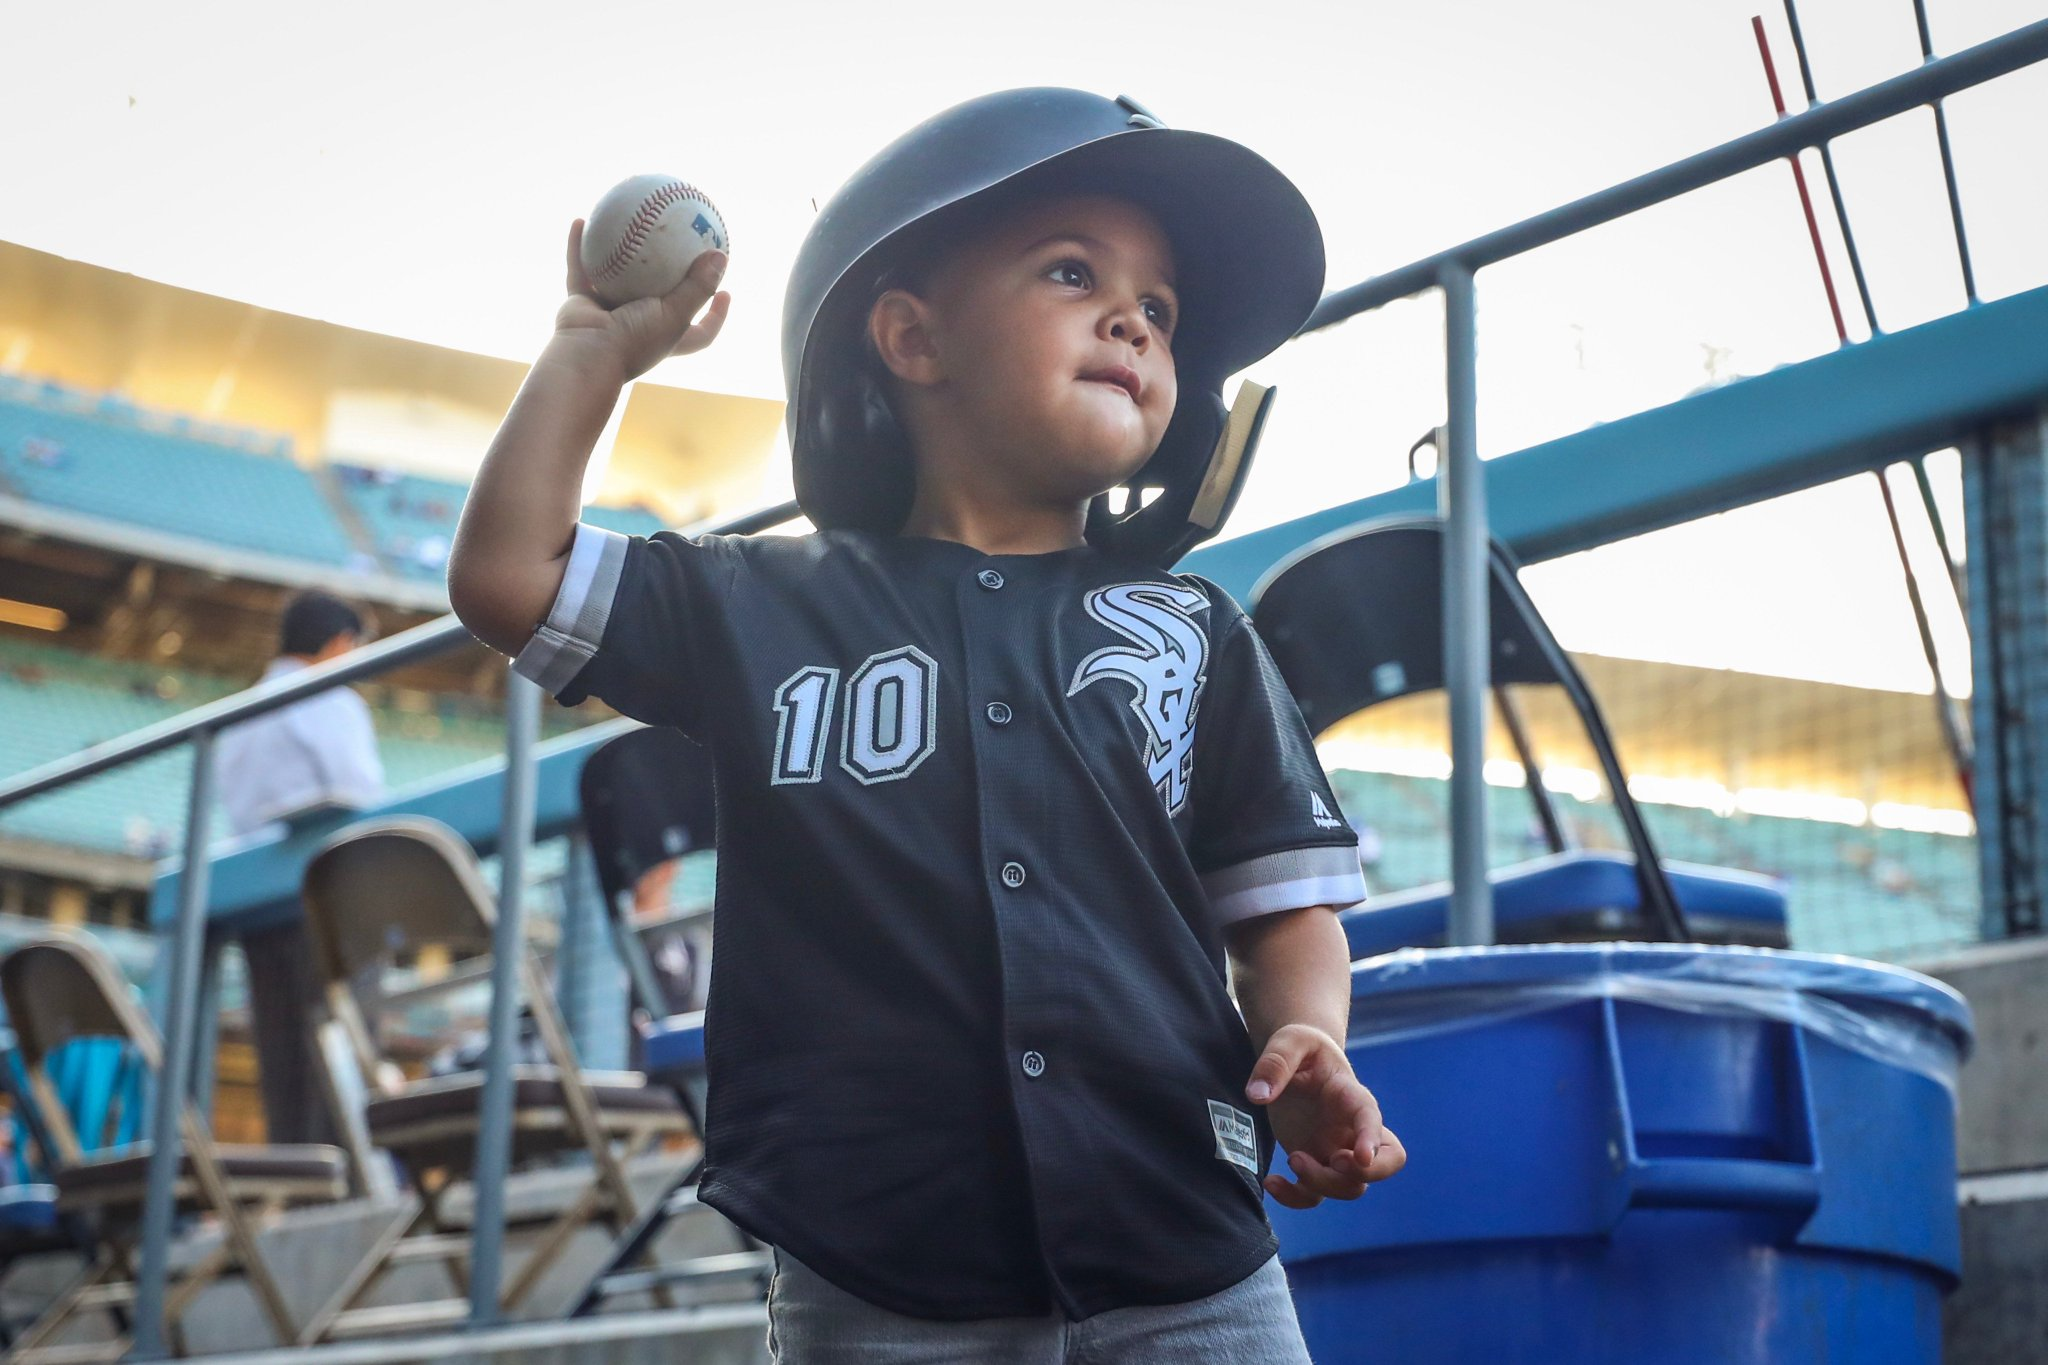 Mini Moncada is ready to #PlayBall. https://t.co/LgIUcokgzO